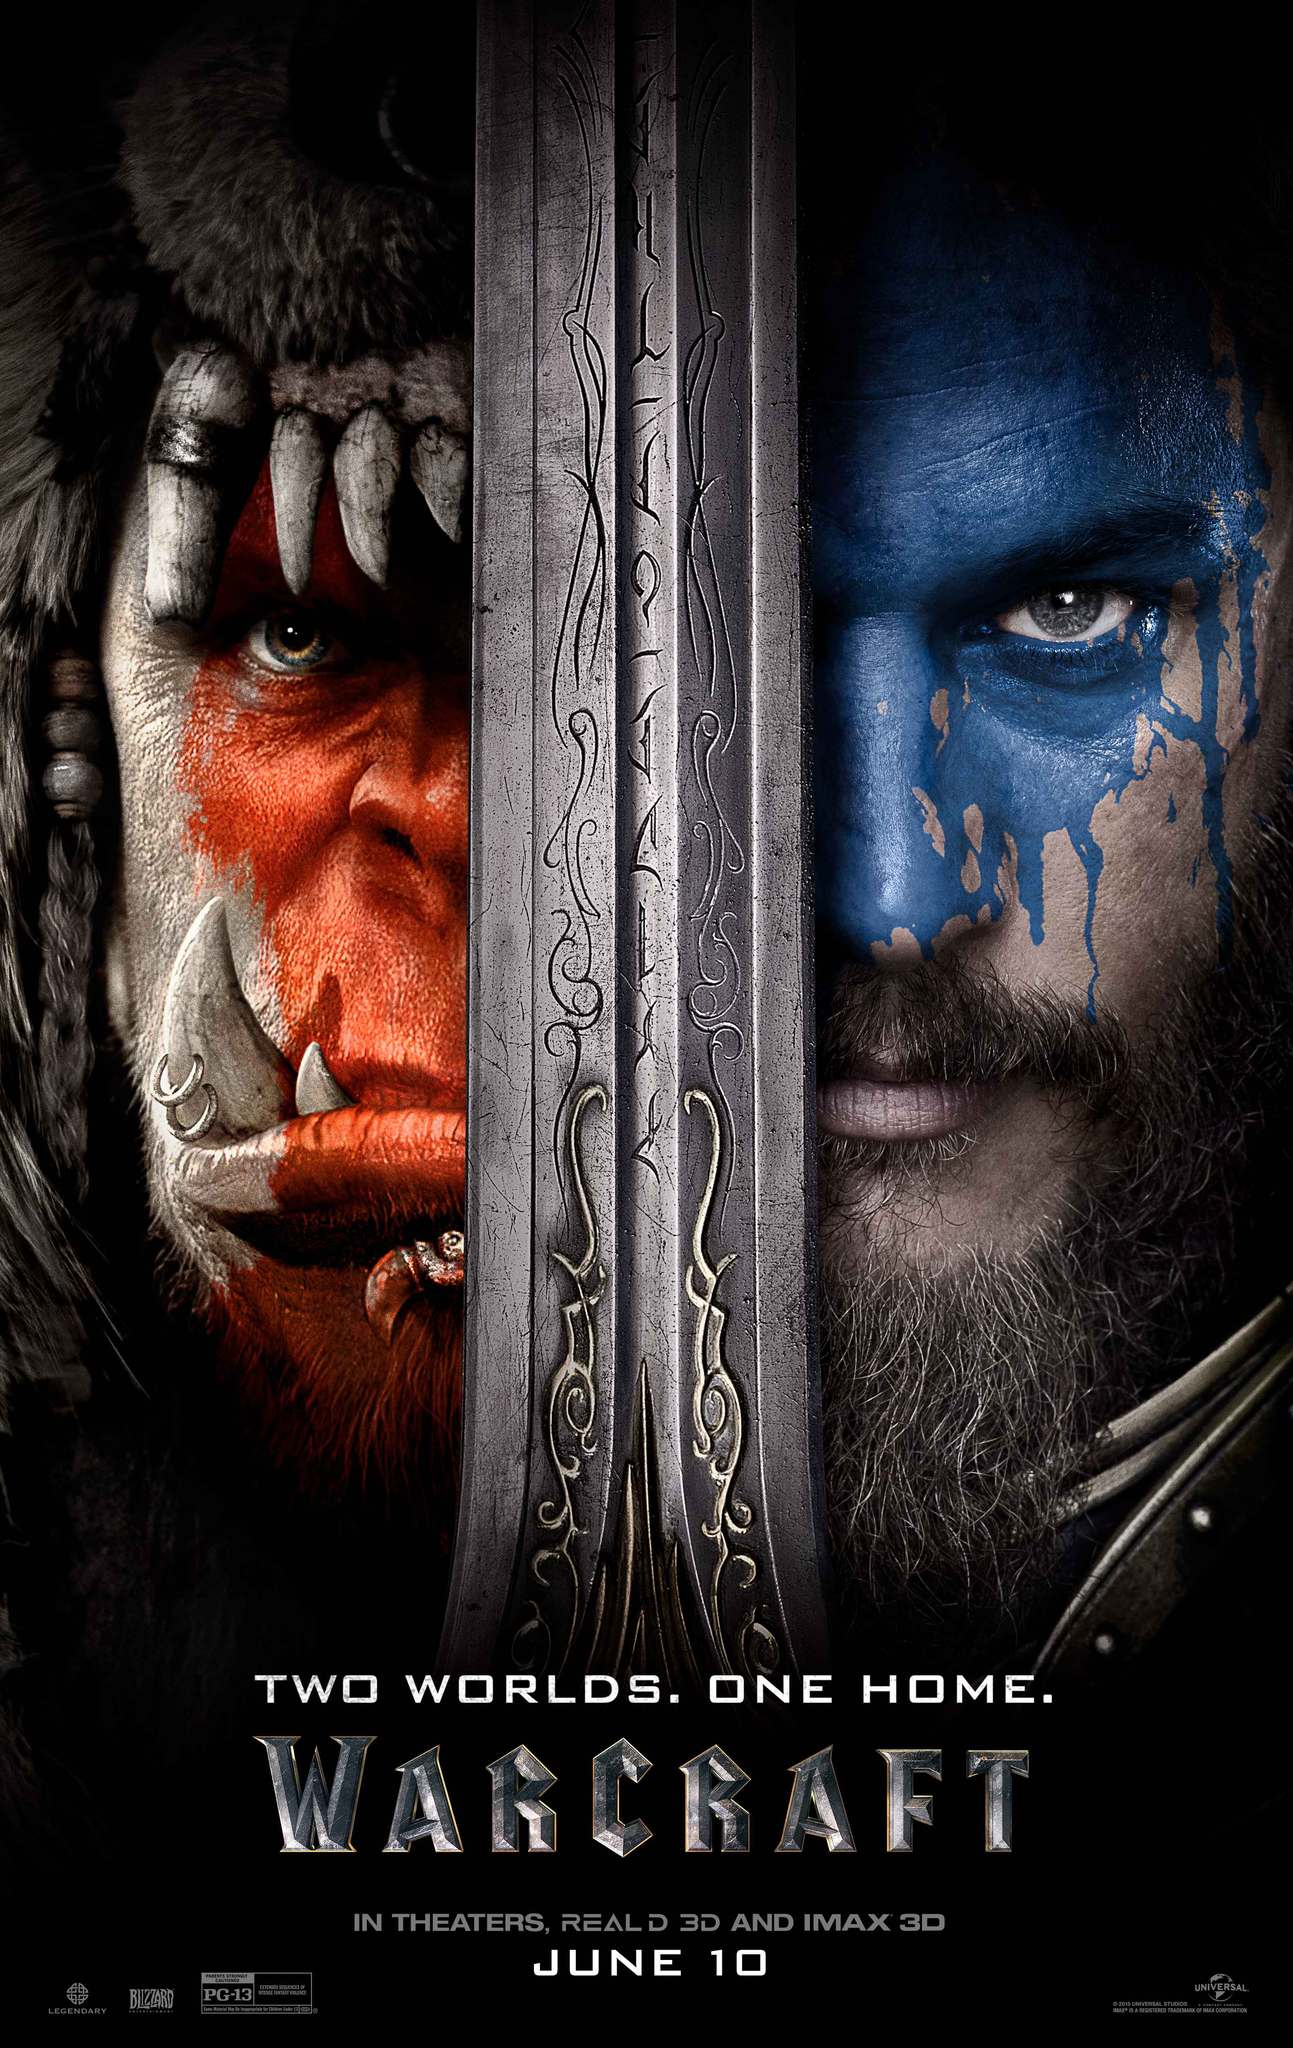 Warcraft Movie Wallpapers - Wallpaper Cave